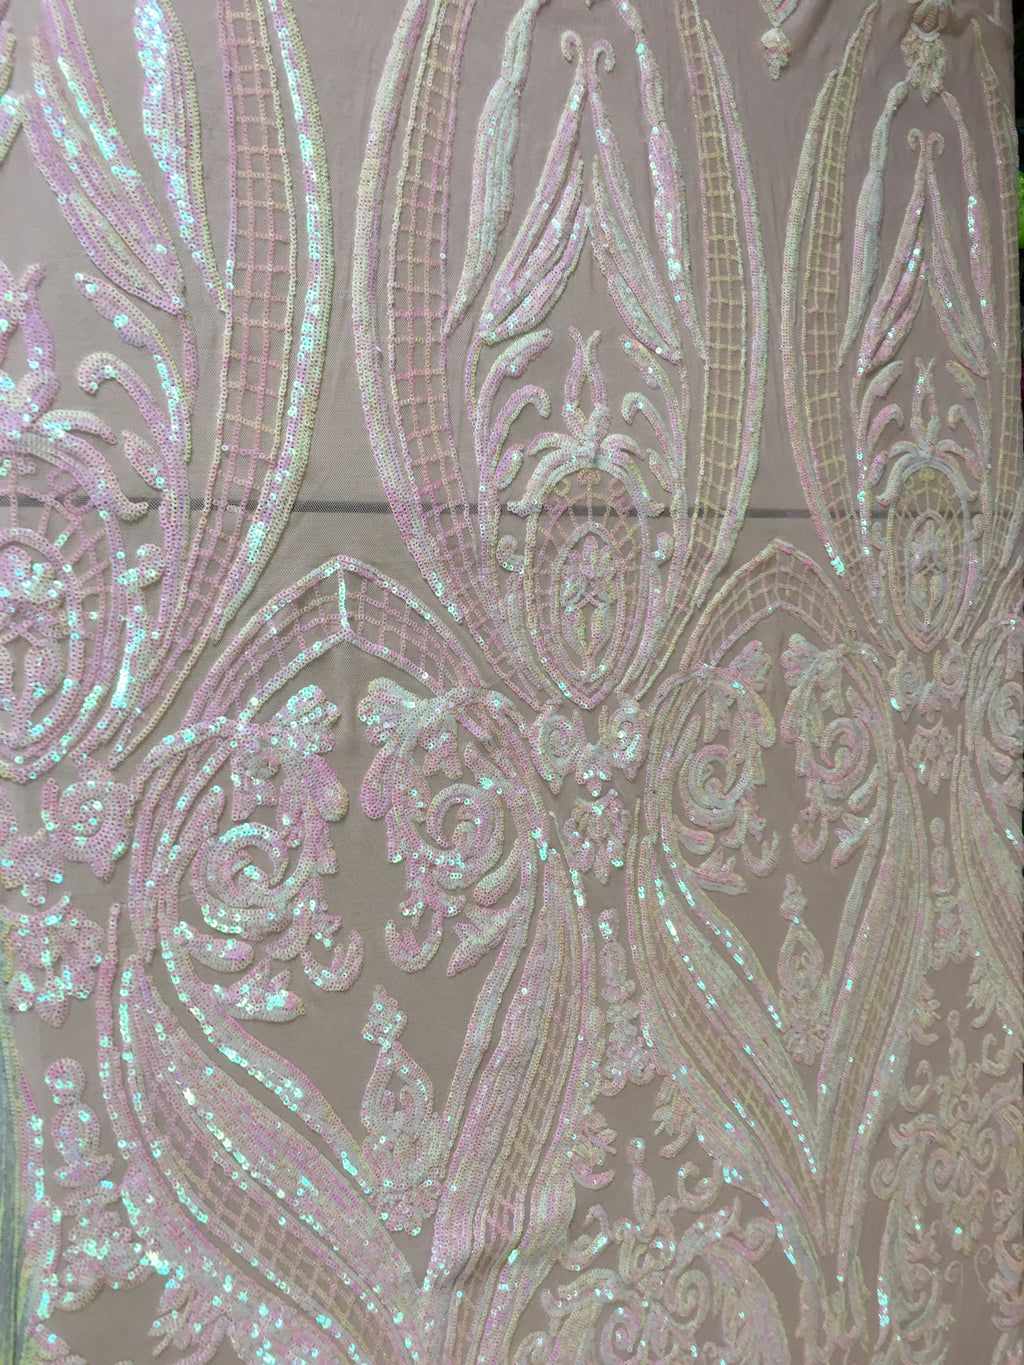 Egyptian Scarab Pincers Design Nude/Iridescent Pink Sequins 4 way Stretch Wedding Prom Fabric Dresses Sold By The Yard